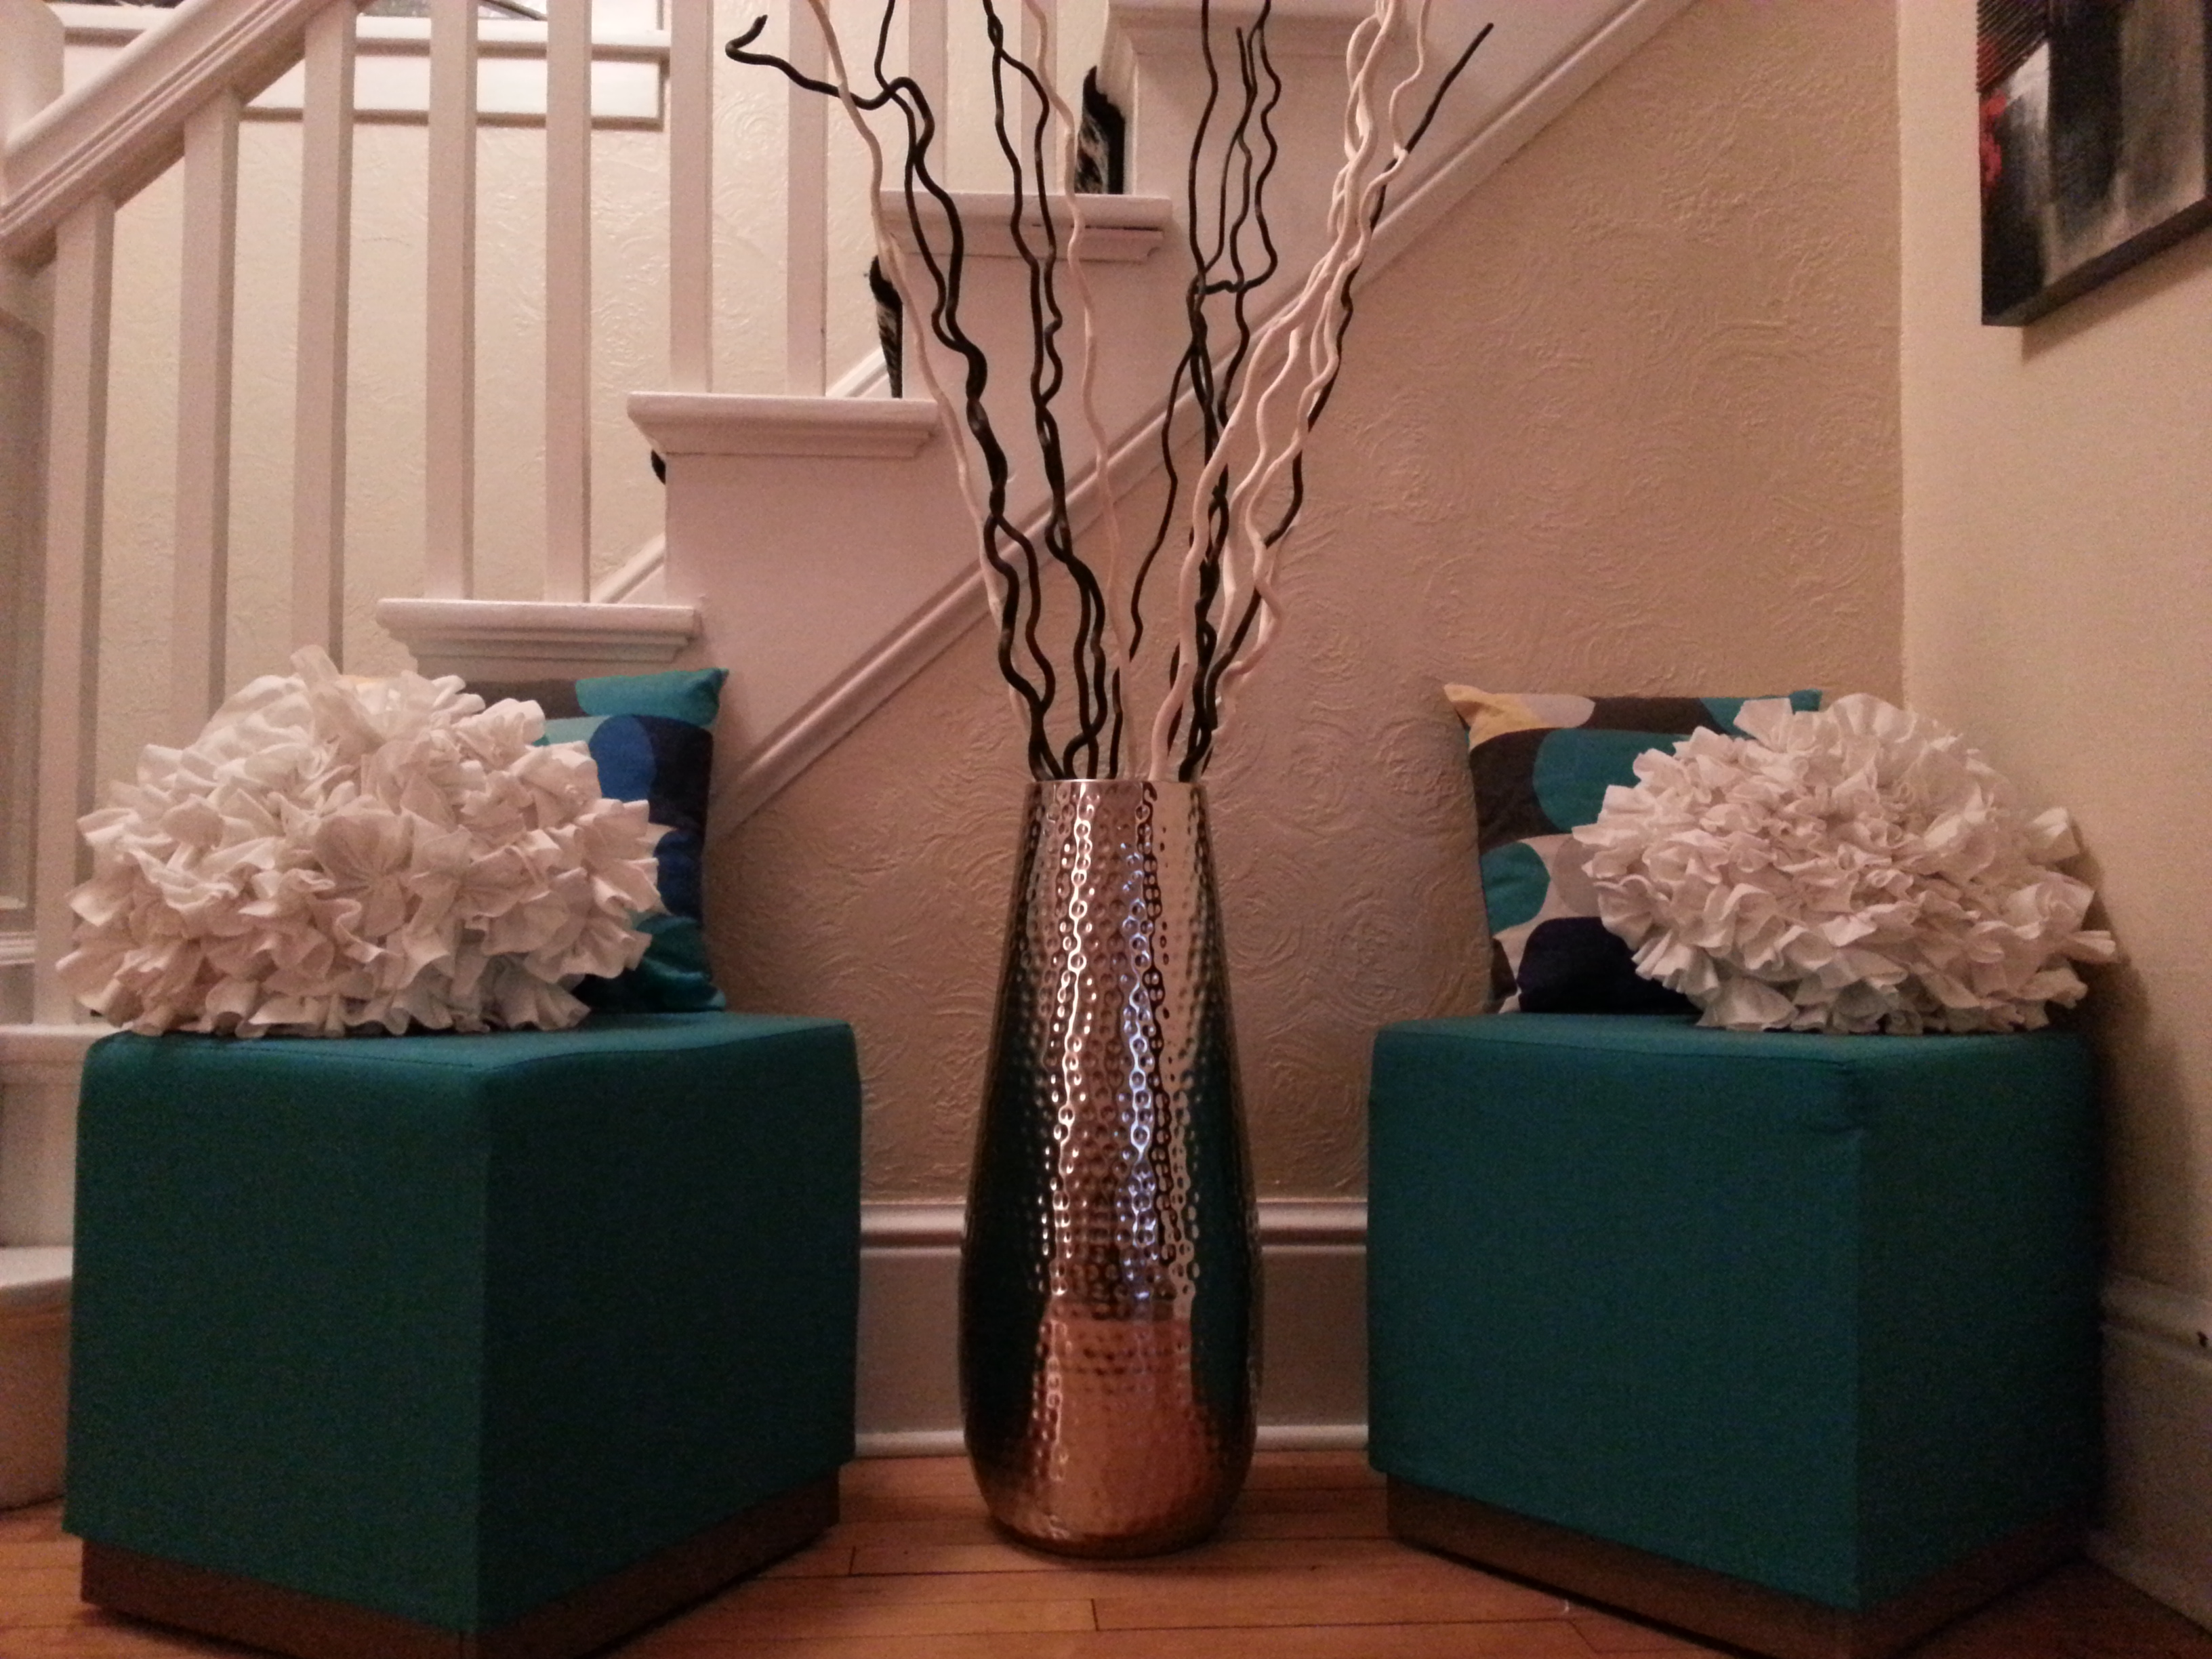 Living Room Vase big vases for living room – living room design inspirations